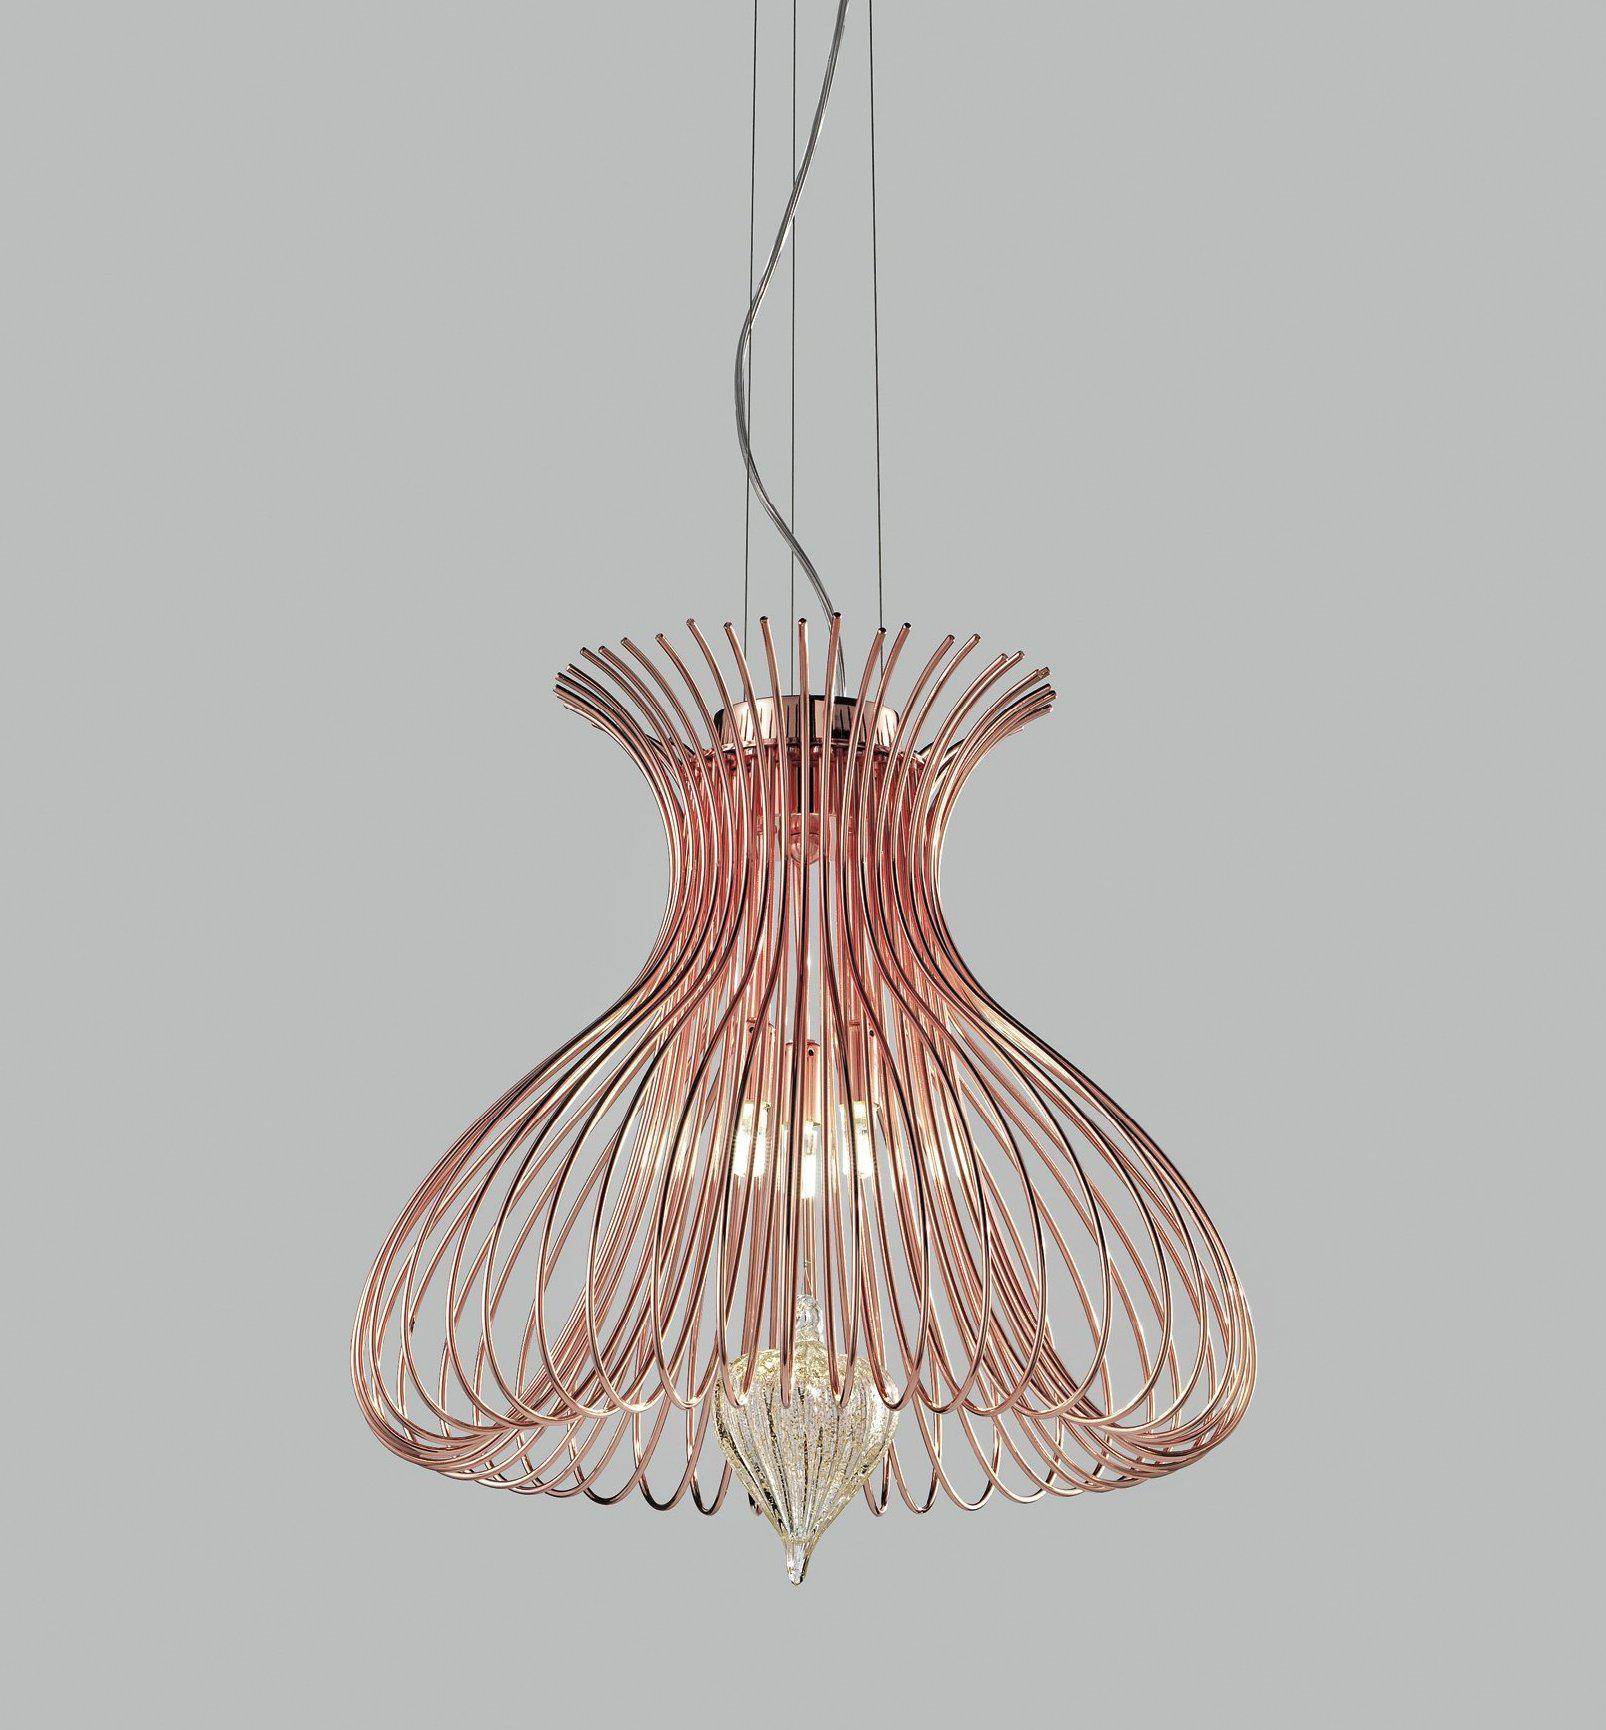 Contemporary Metal Pendant Ceiling Light Vortex Design Crafted in wire 40cm diameter with 3 Lamps-Copper-Distinct Designs (London) Ltd